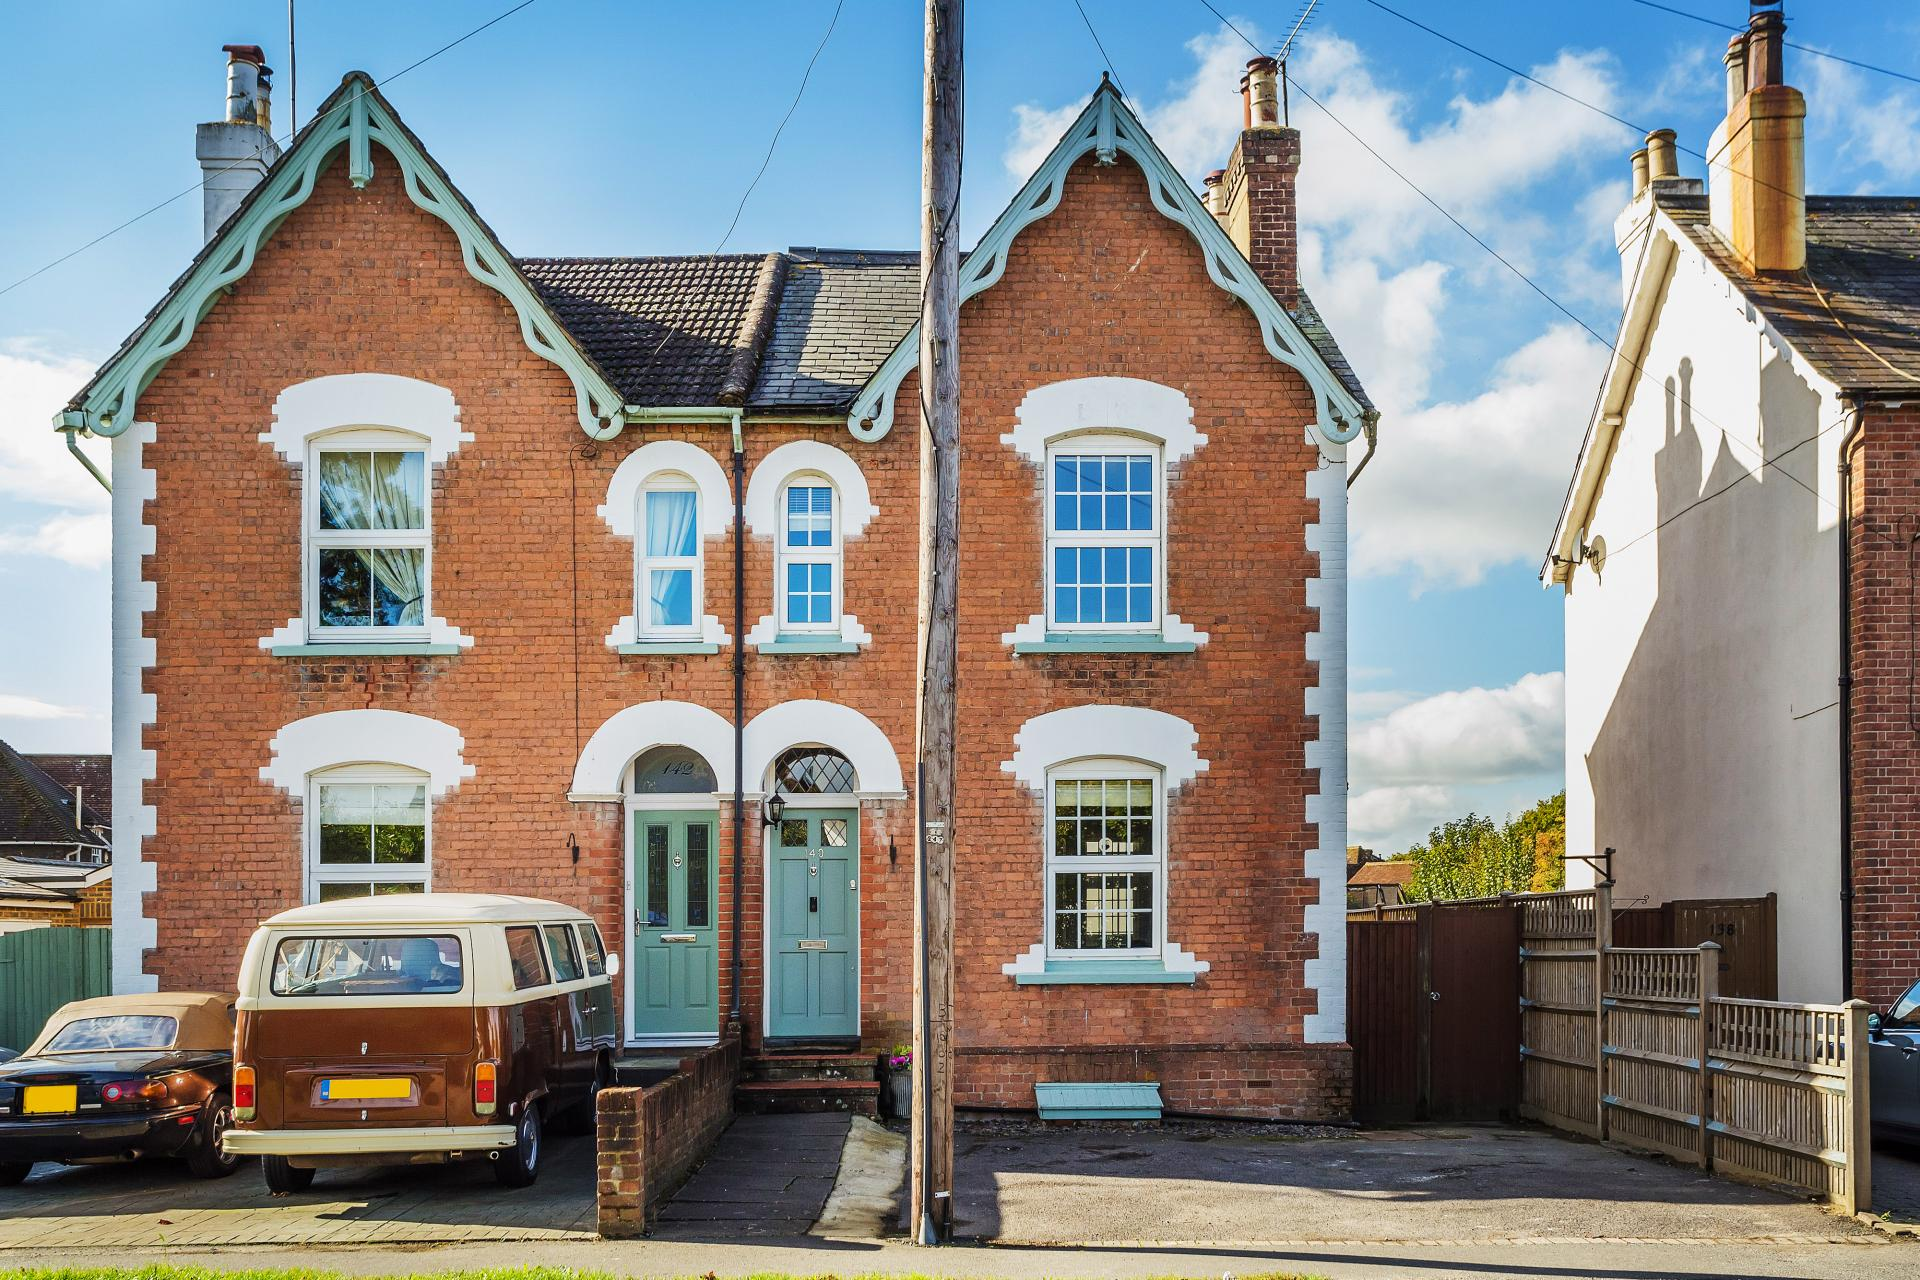 beautiful symmetrical semi-detached Victorian house brick and blue